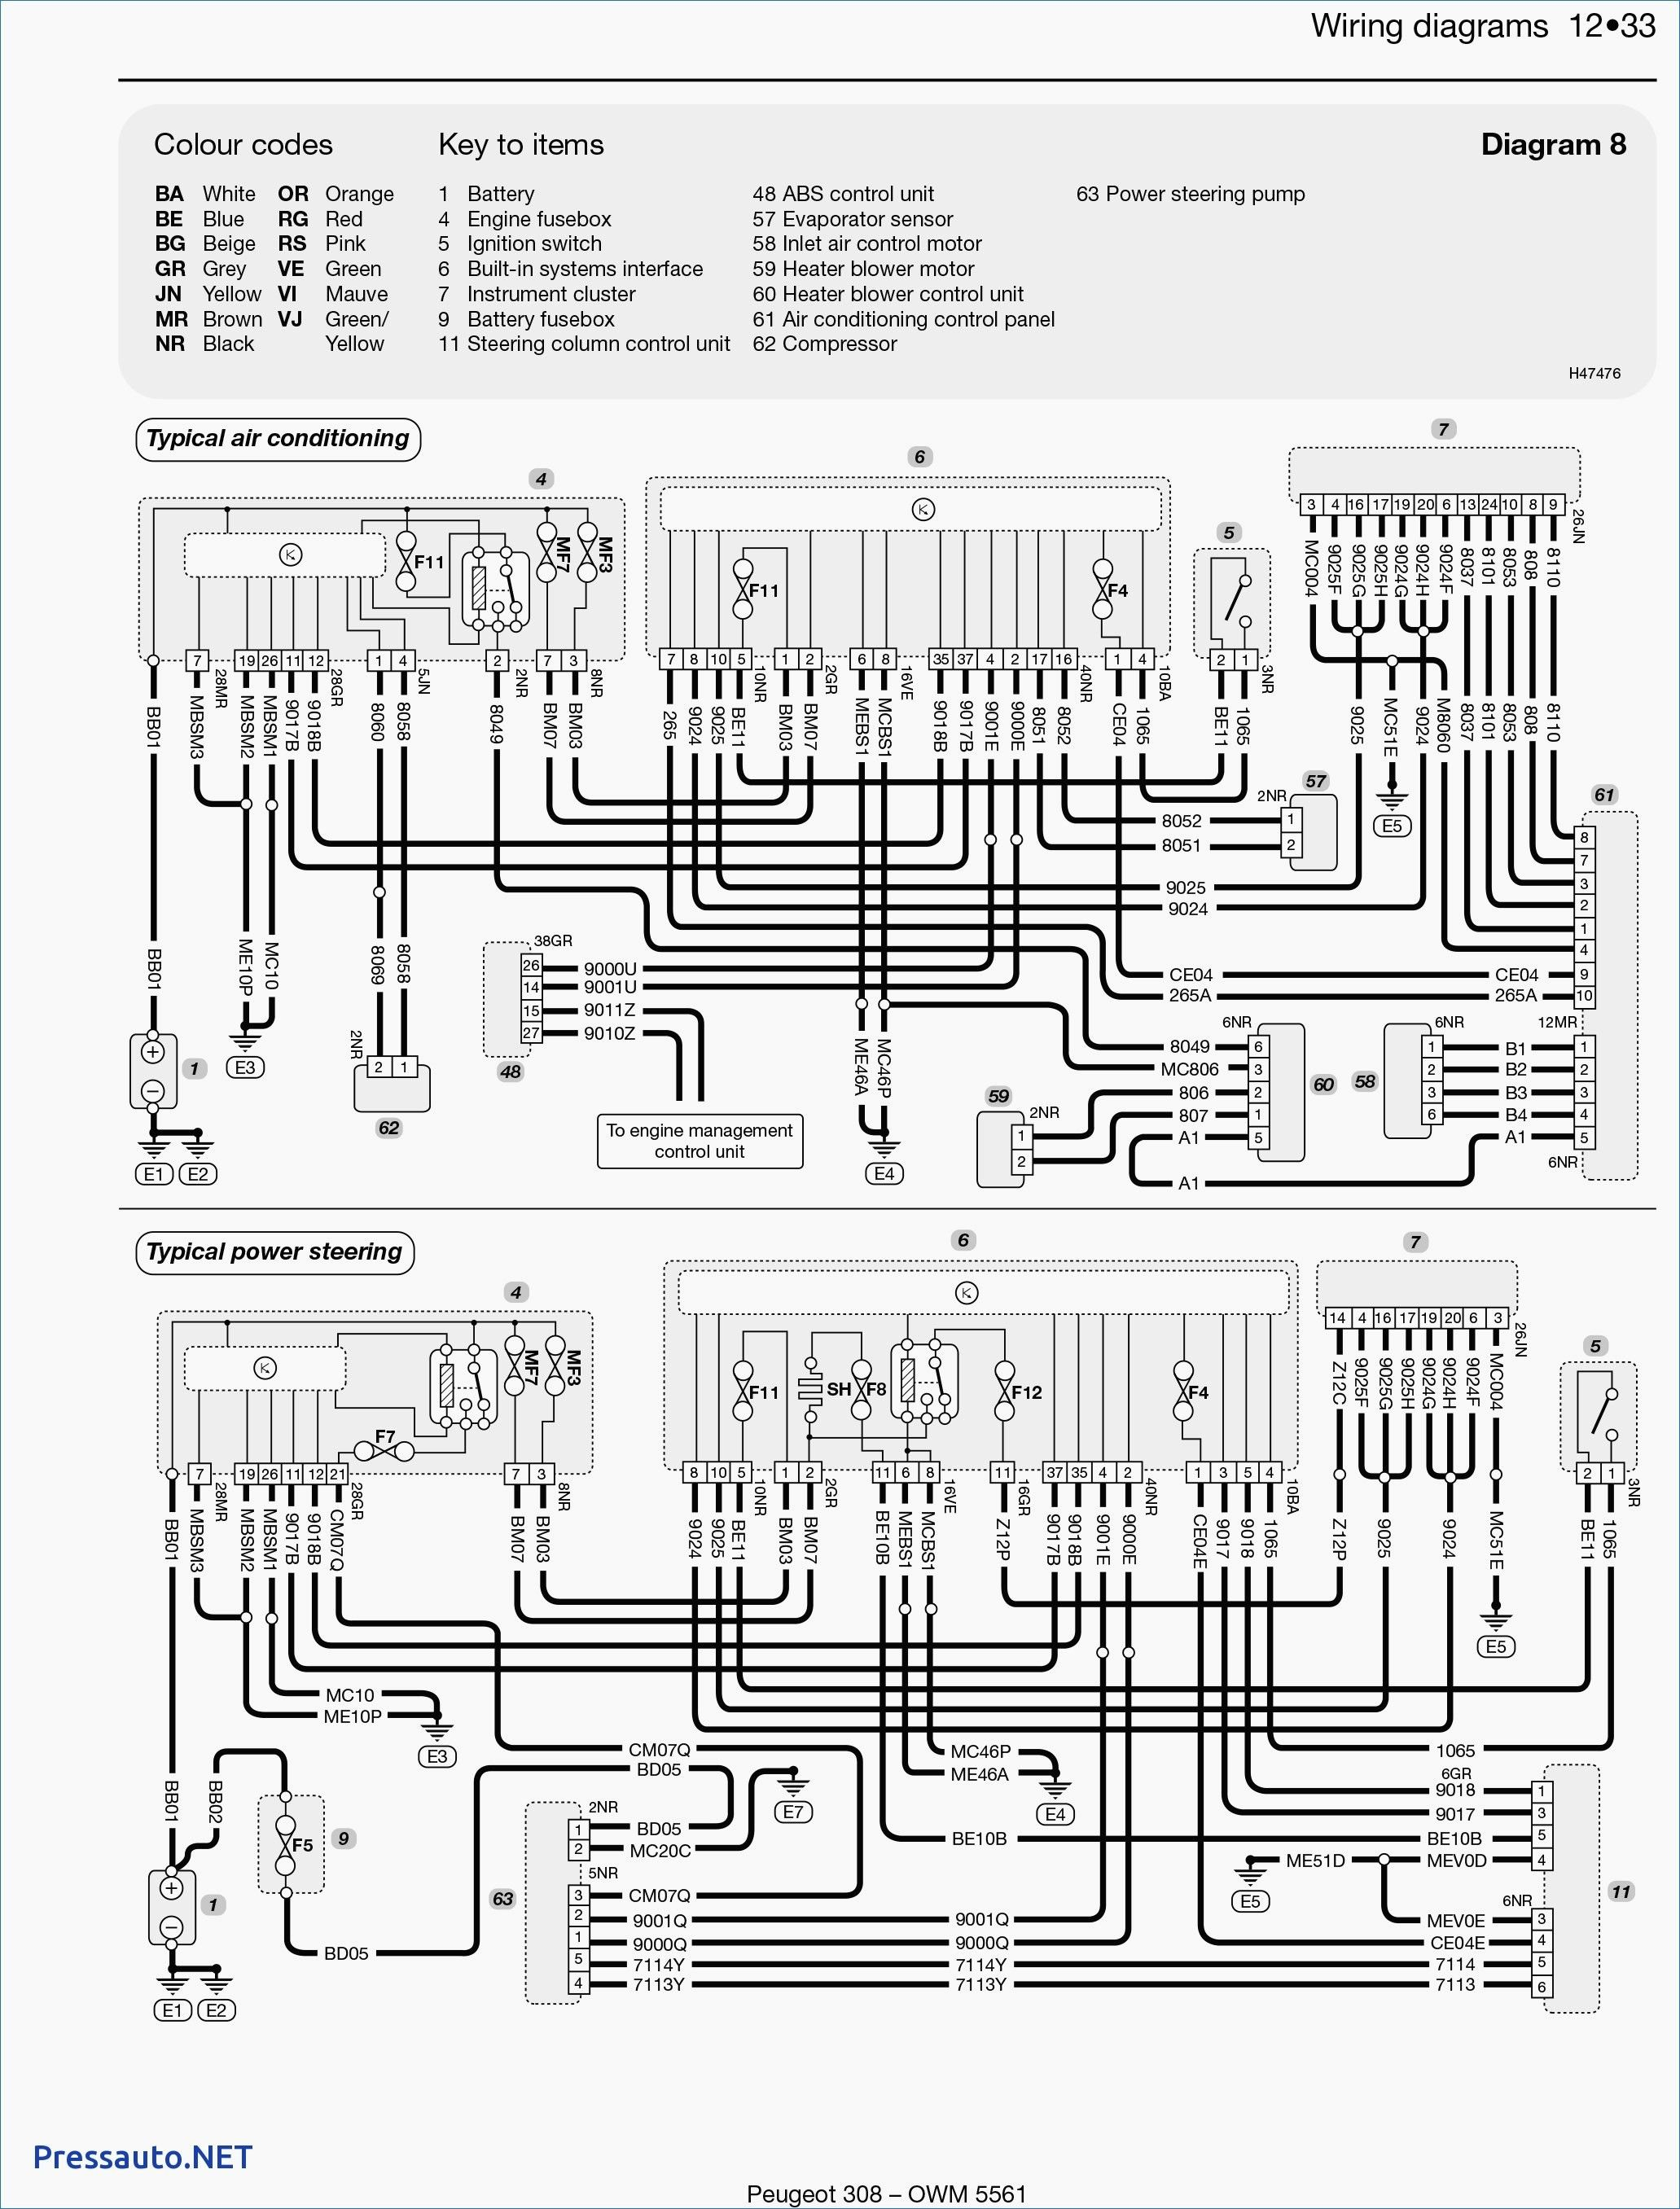 Enjoyable Peugeot Engine Diagrams Wiring Library Wiring Cloud Usnesfoxcilixyz